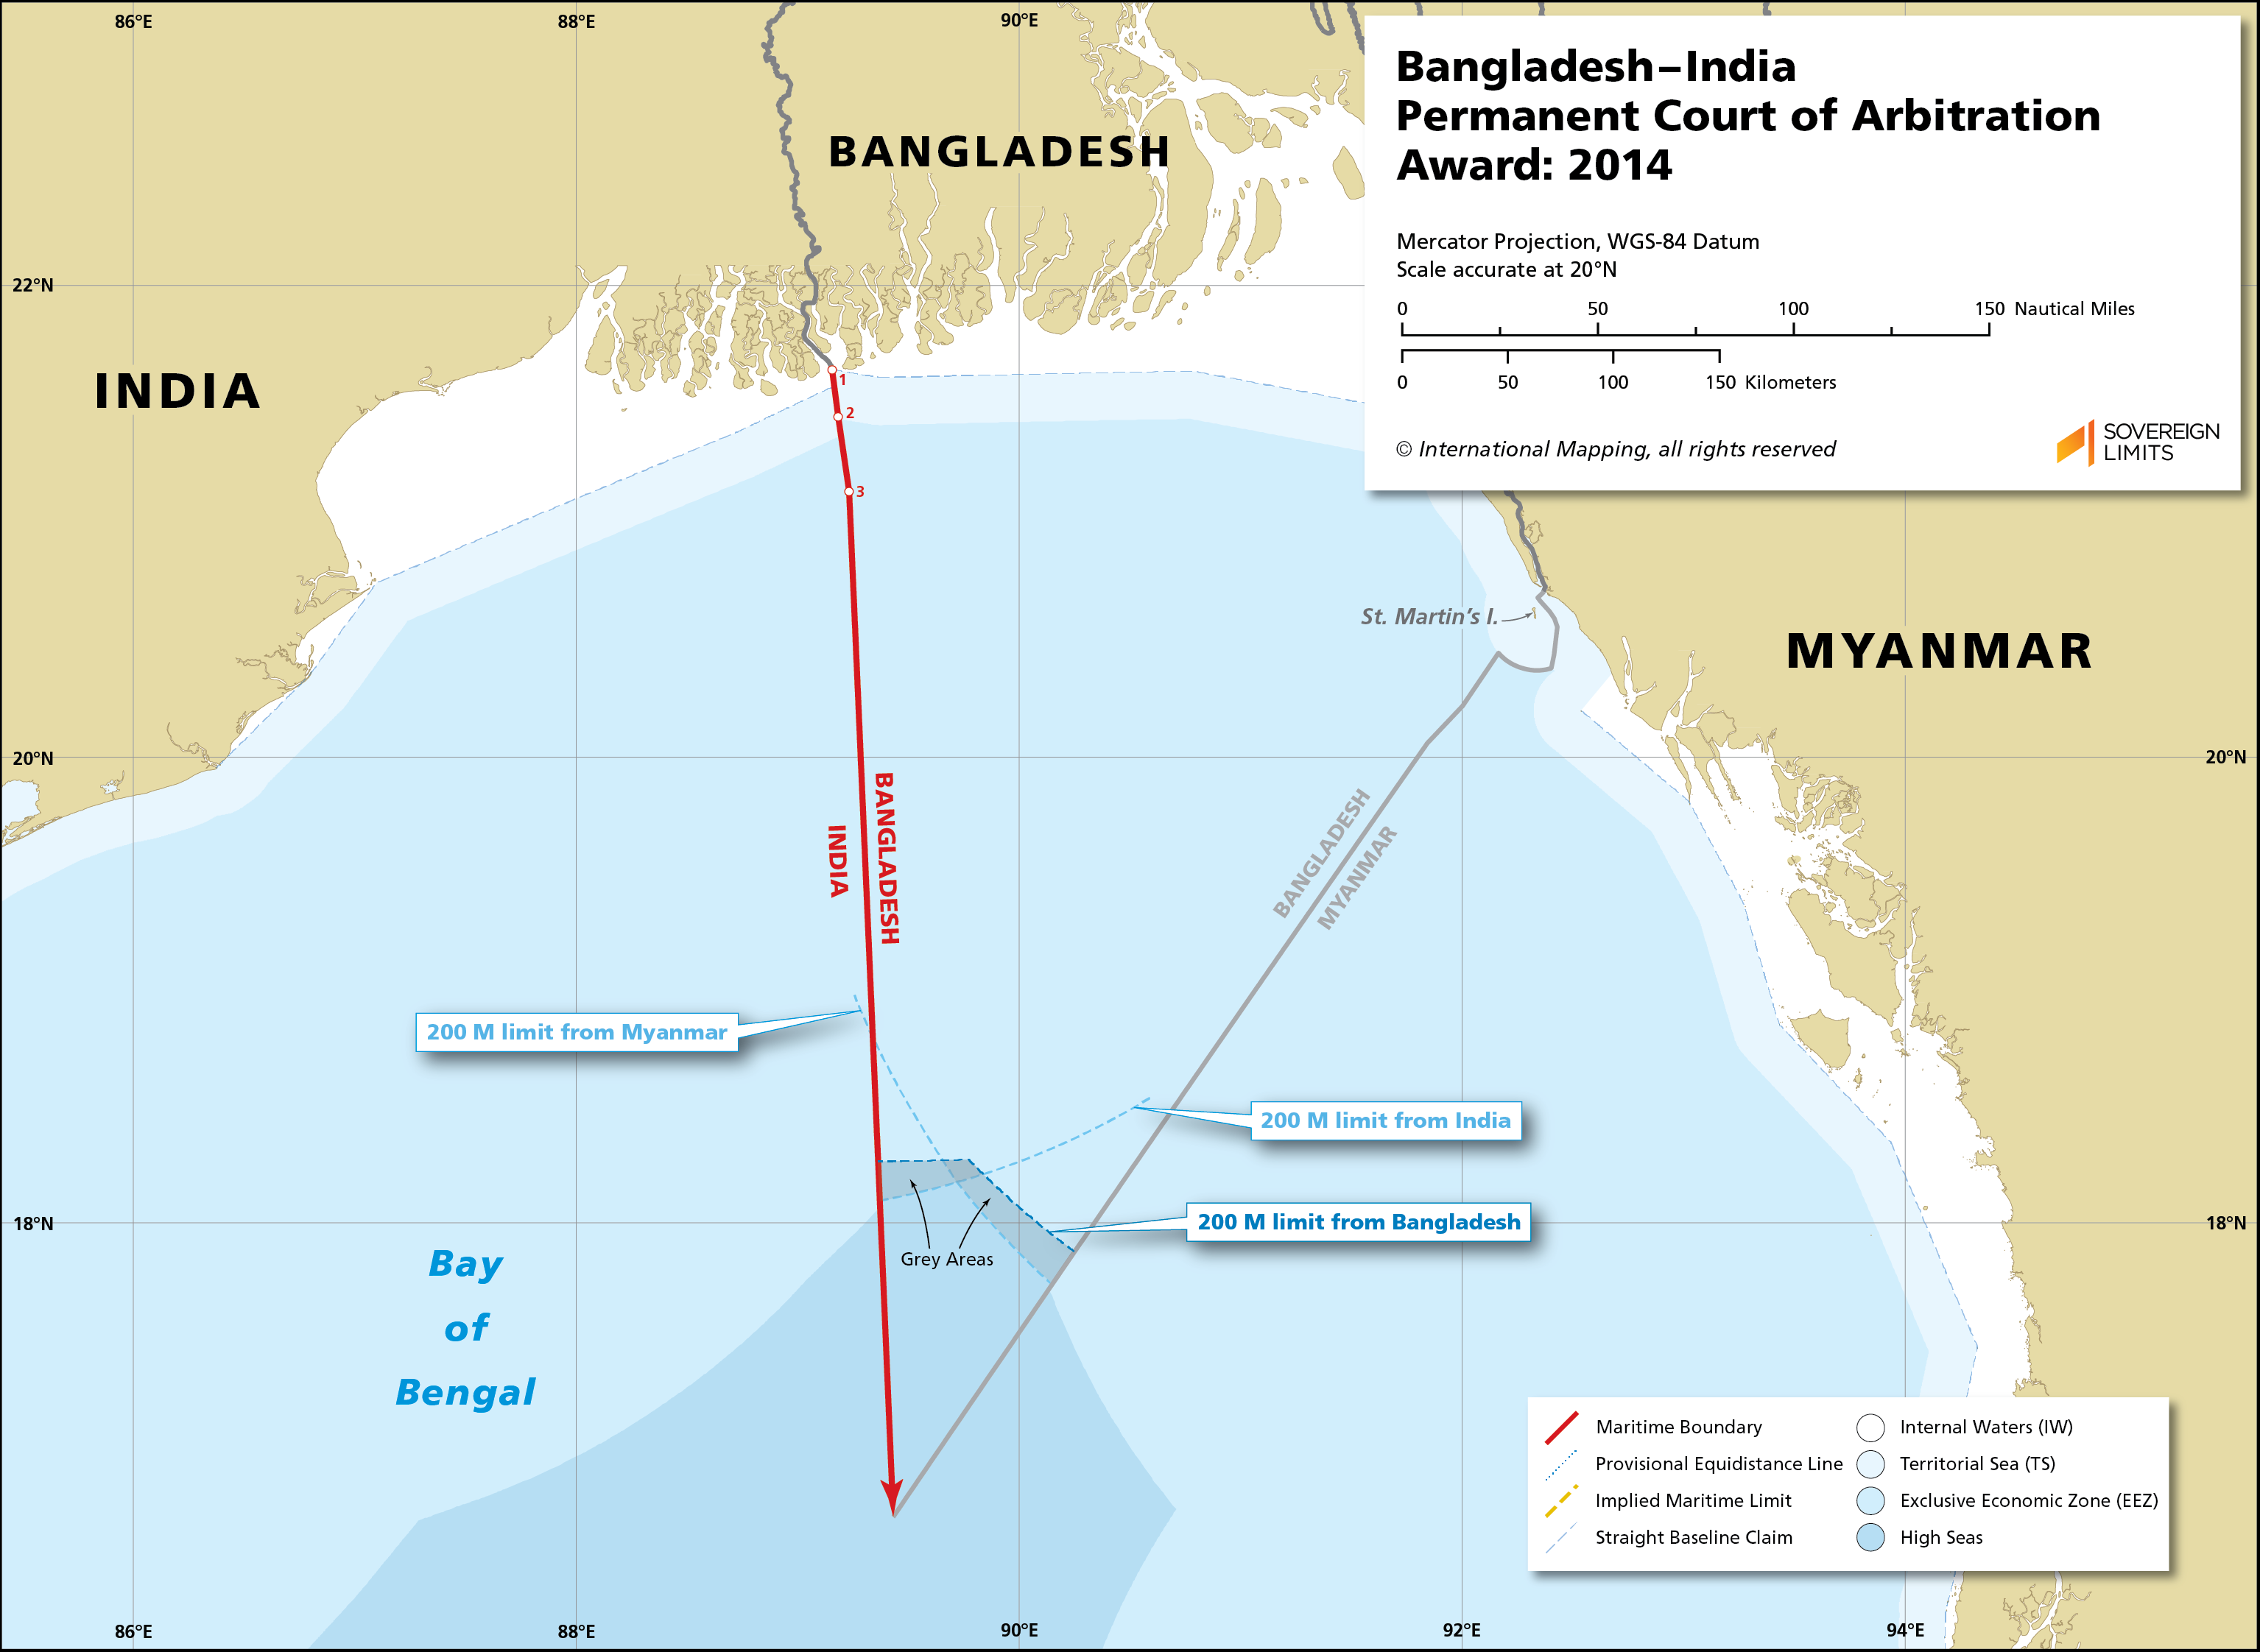 Map showing the maritime boundary between Bangladesh and India